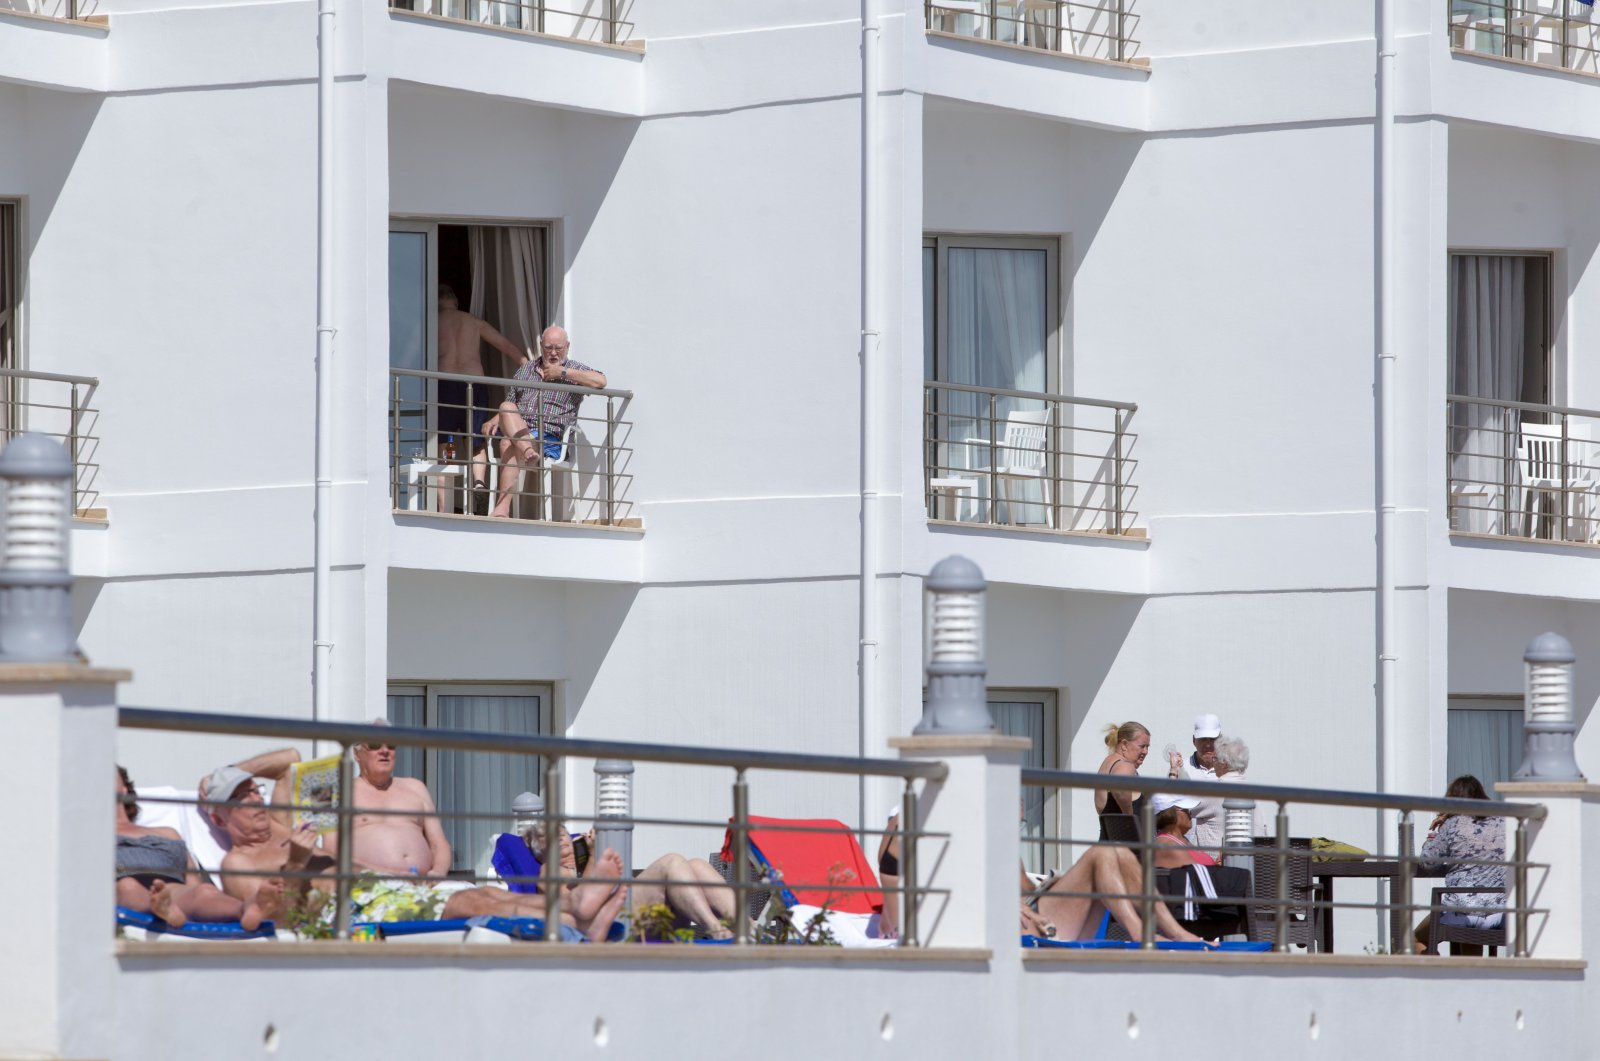 Tourists sit in the sun at the Salamis Bay Conti Hotel, under quarantine due to the novel coronavirus outbreak, in the eastern Cypriot port city of Famagusta in the Turkish Republic of North Cyprus (TRNC), on March 10, 2020. (AFP Photo)